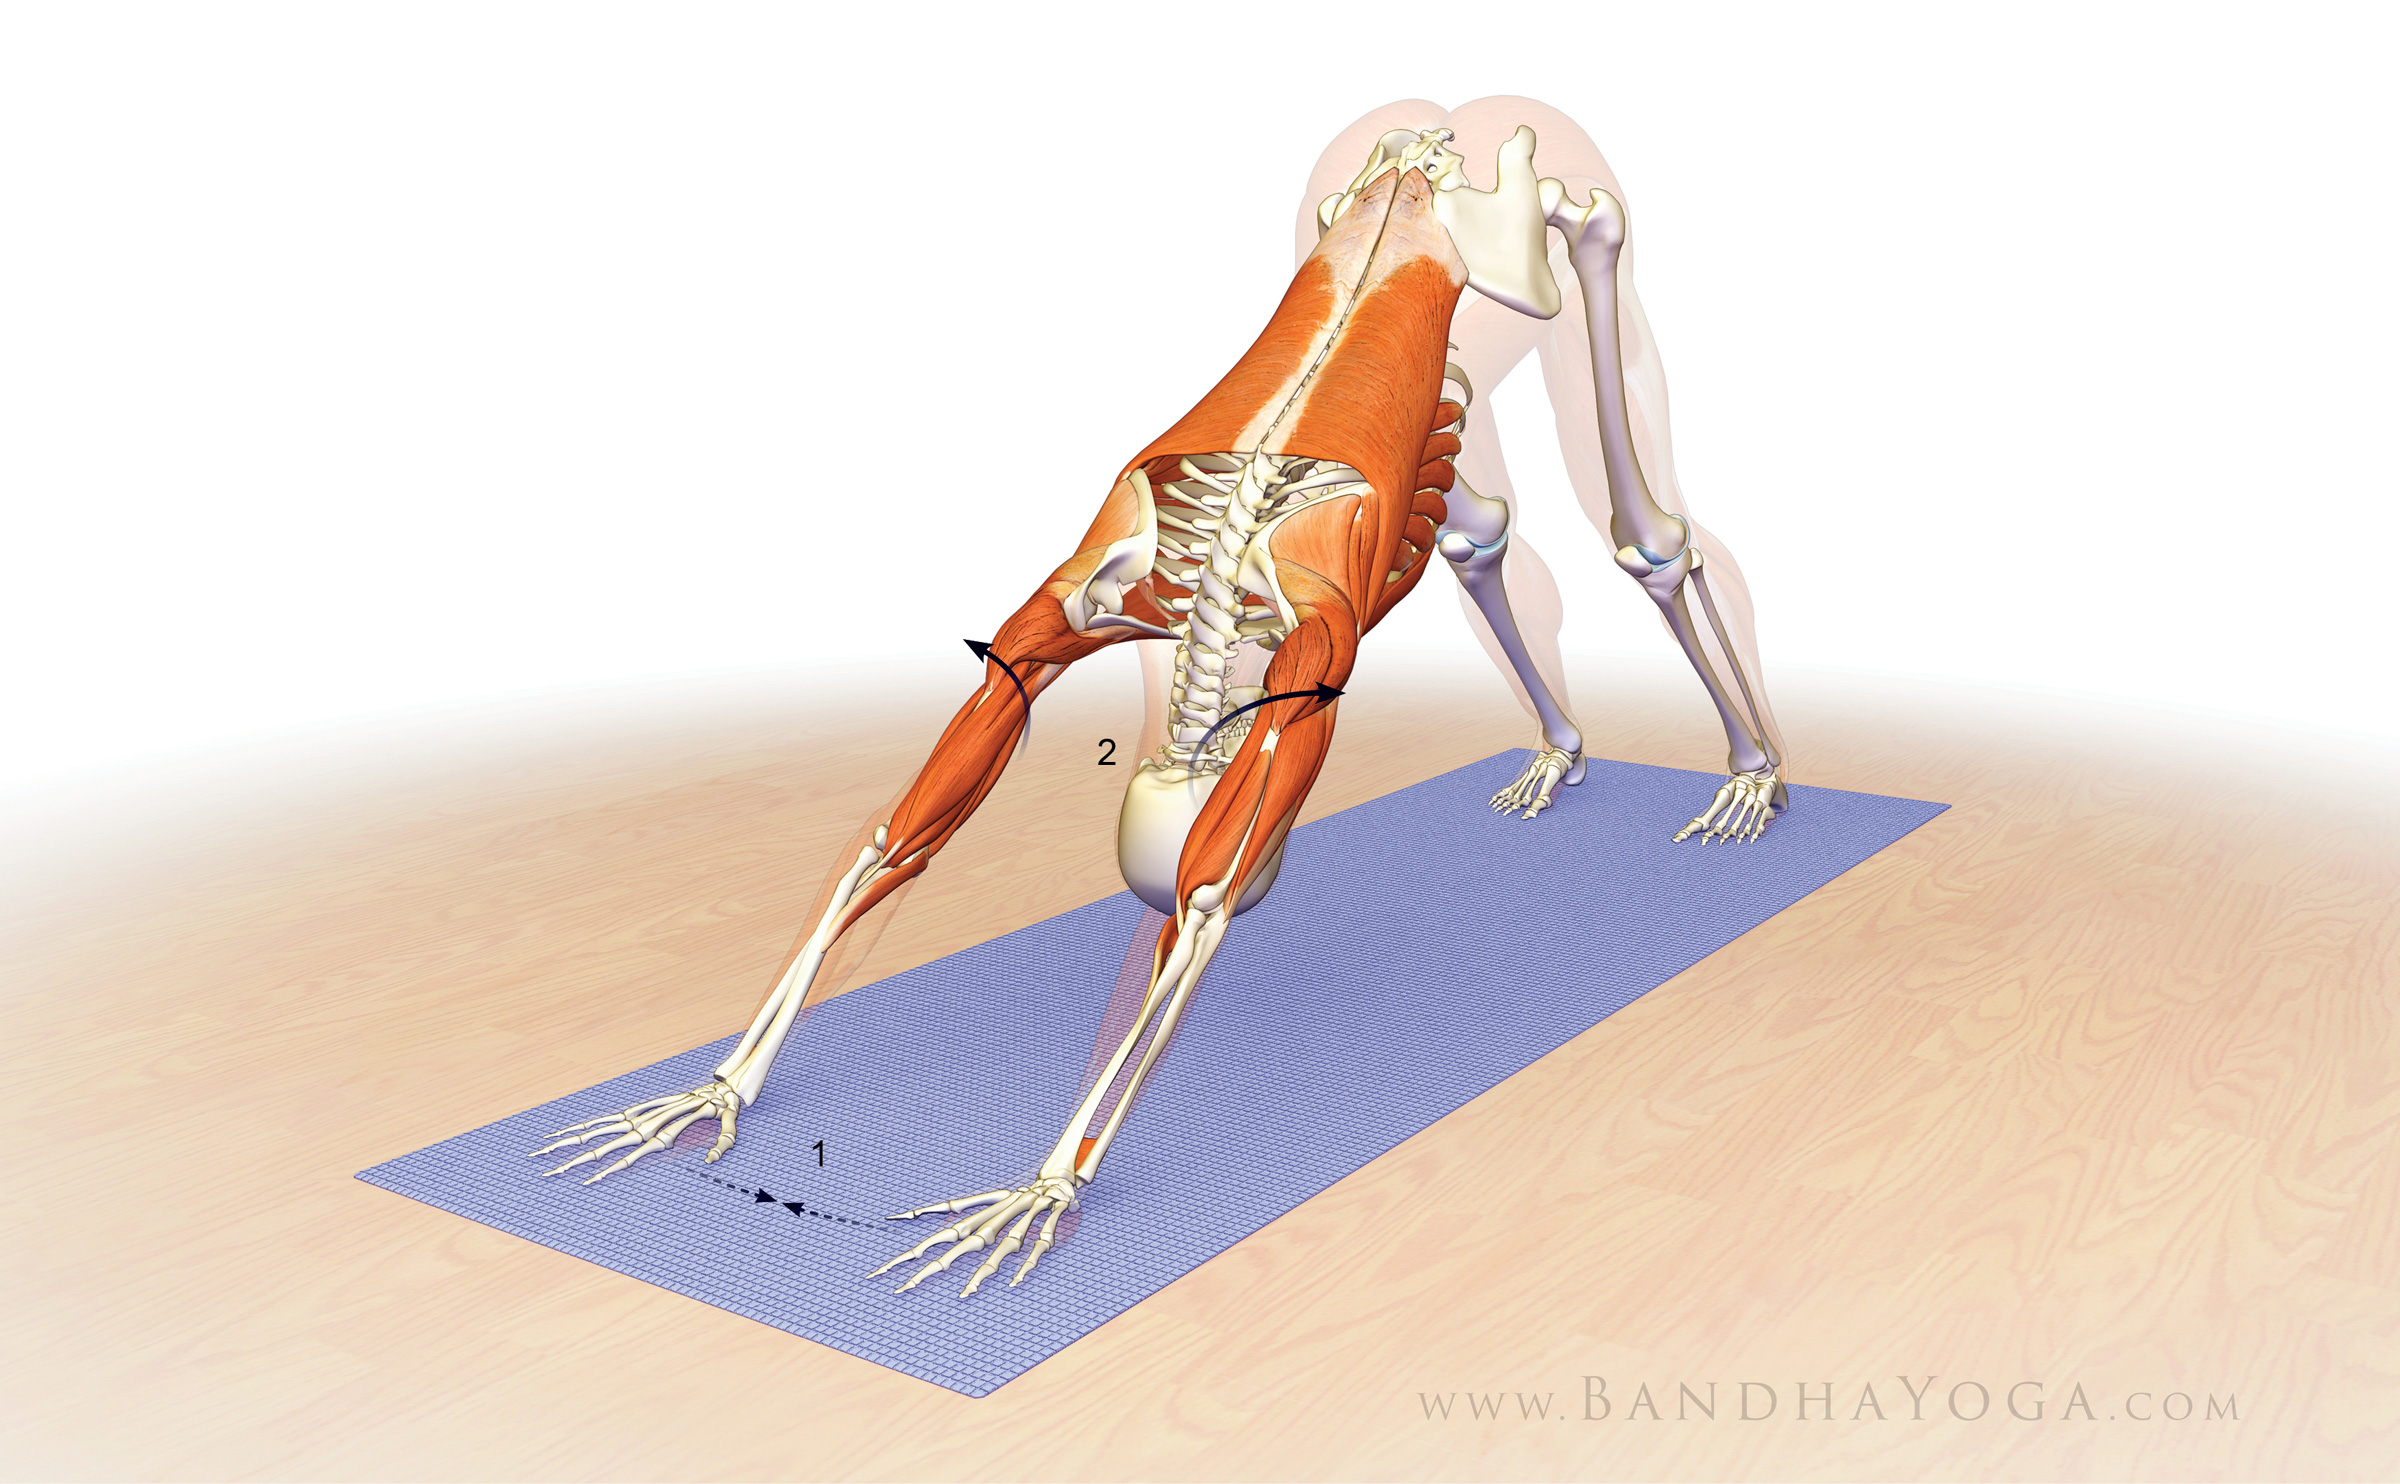 How about doing down dog without any pain in your wrists or shoulders? It is possible when you understand and engage the correct muscles!